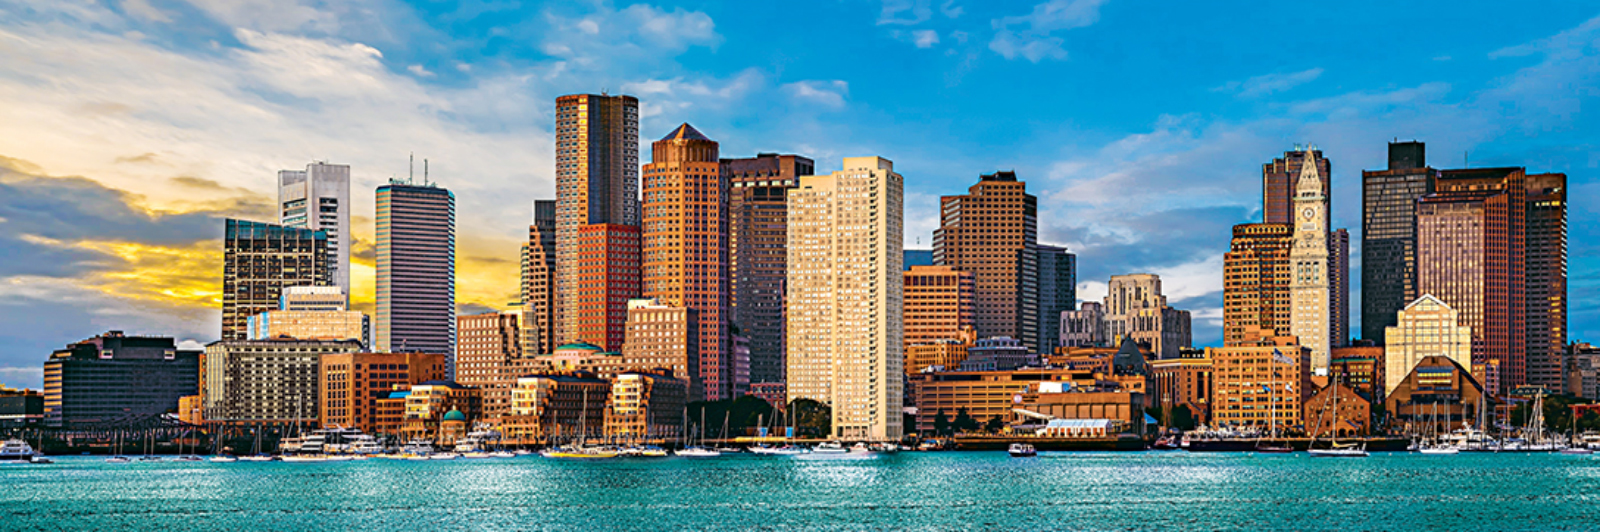 Boston Skyline / Cityscape Jigsaw Puzzle